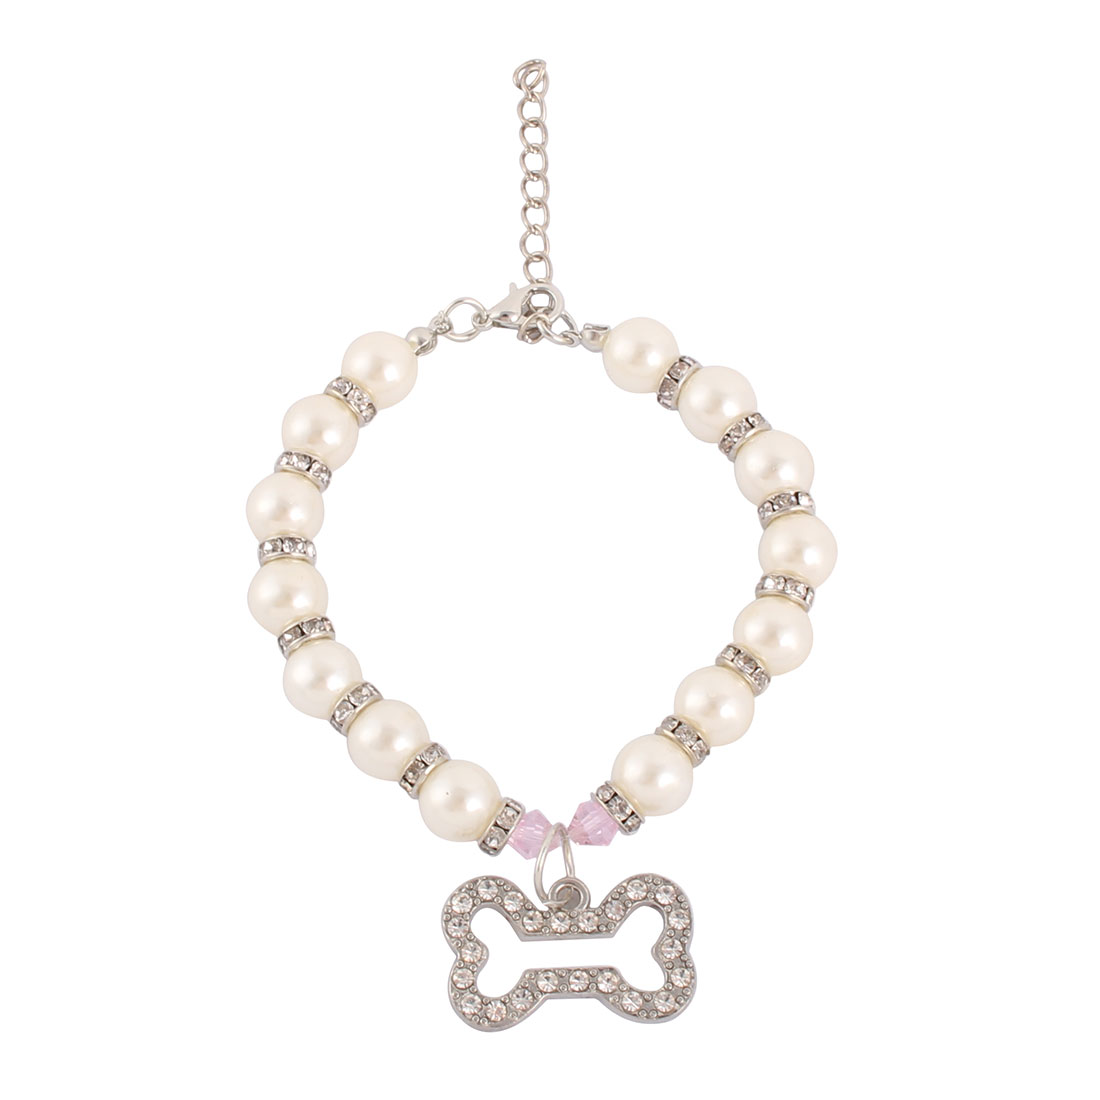 Puppy Metal Round Beads Bone Pendent Adjustable Clasp Pet Necklace Collar White